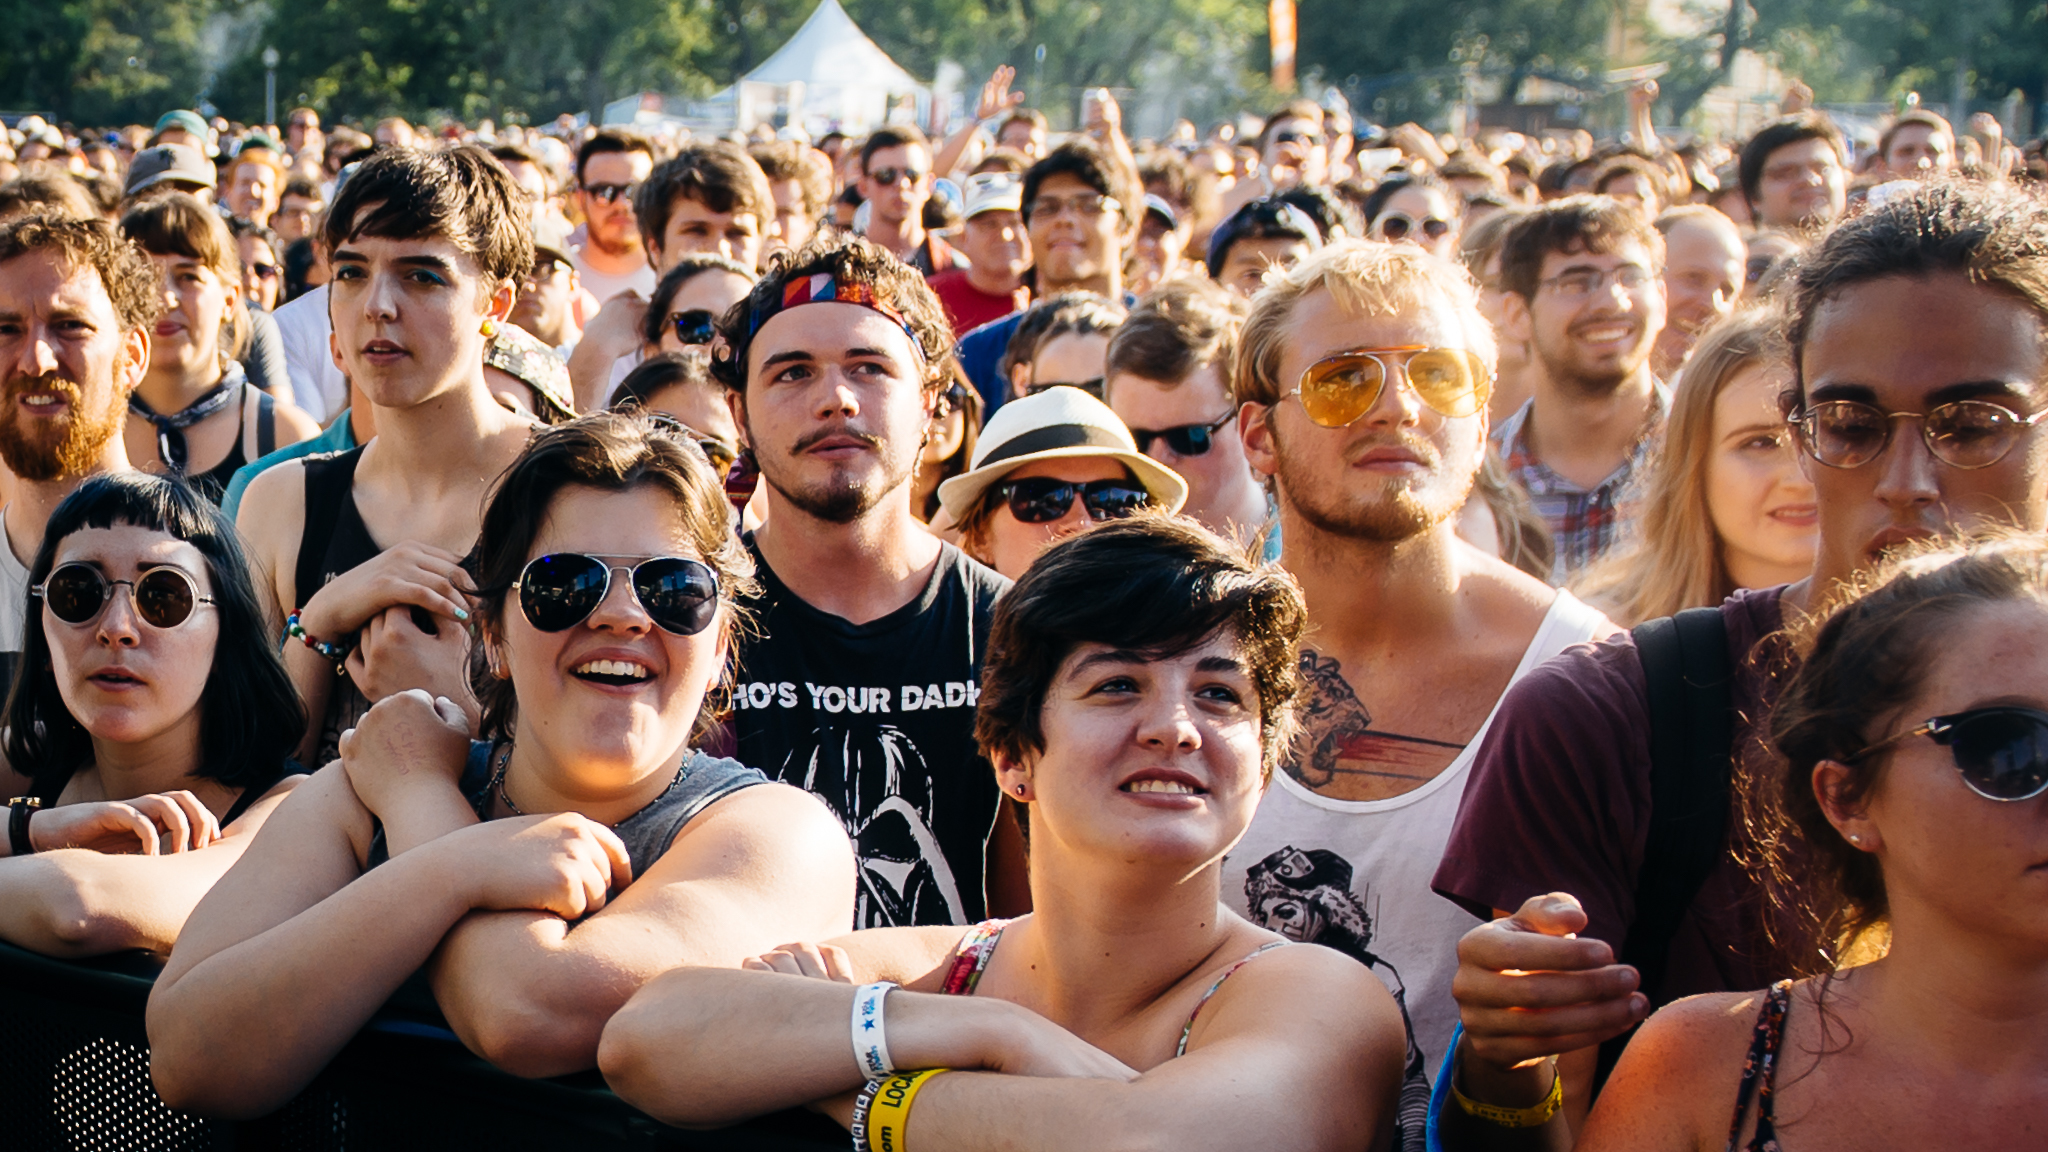 Pitchfork 2015, Saturday: Faces in the crowd